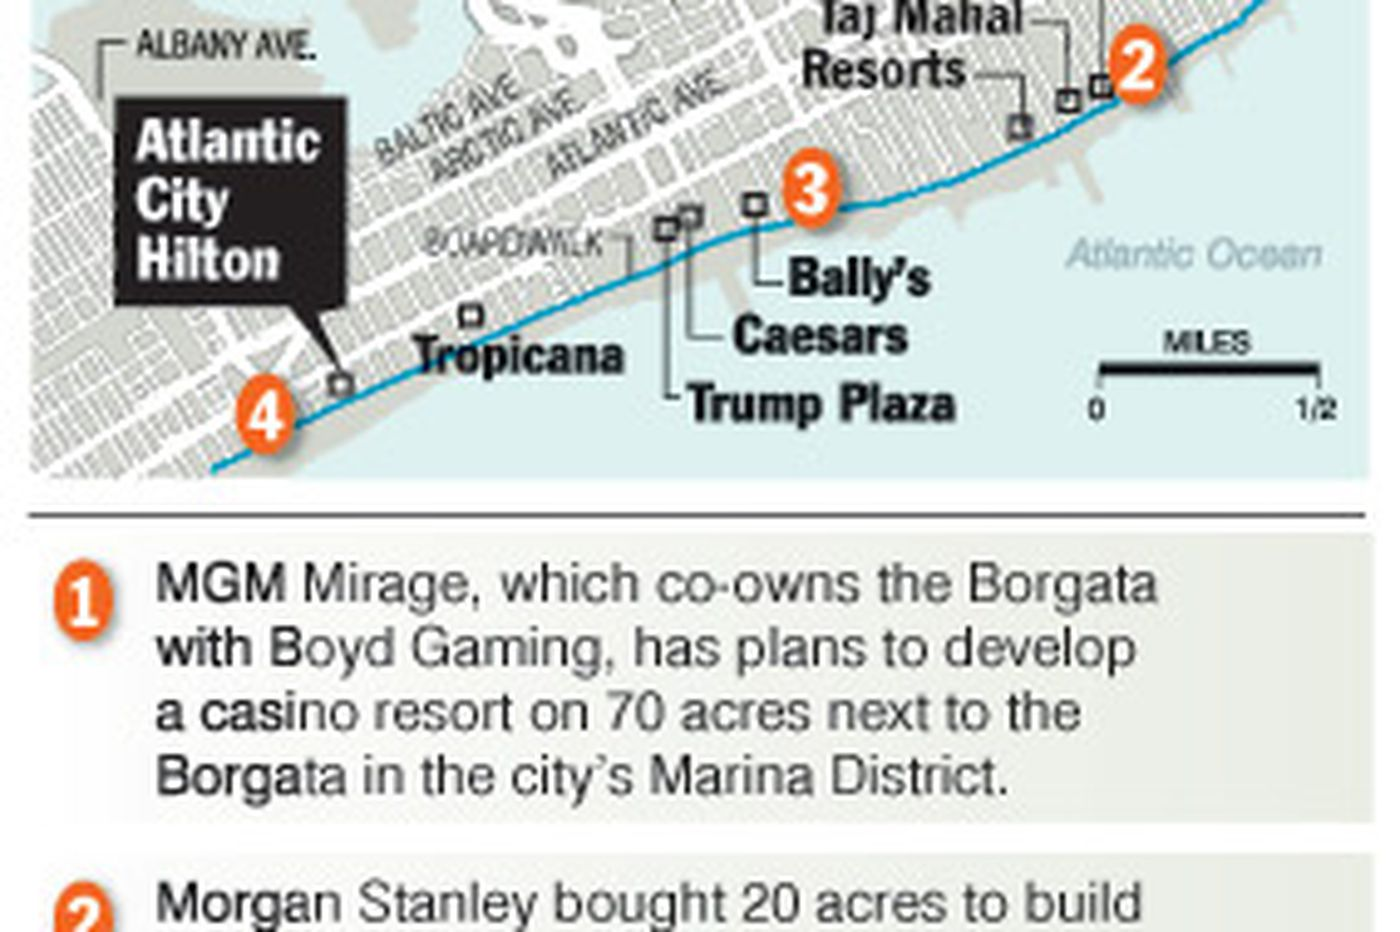 Hilton's plans reflect a larger-scale Atlantic City